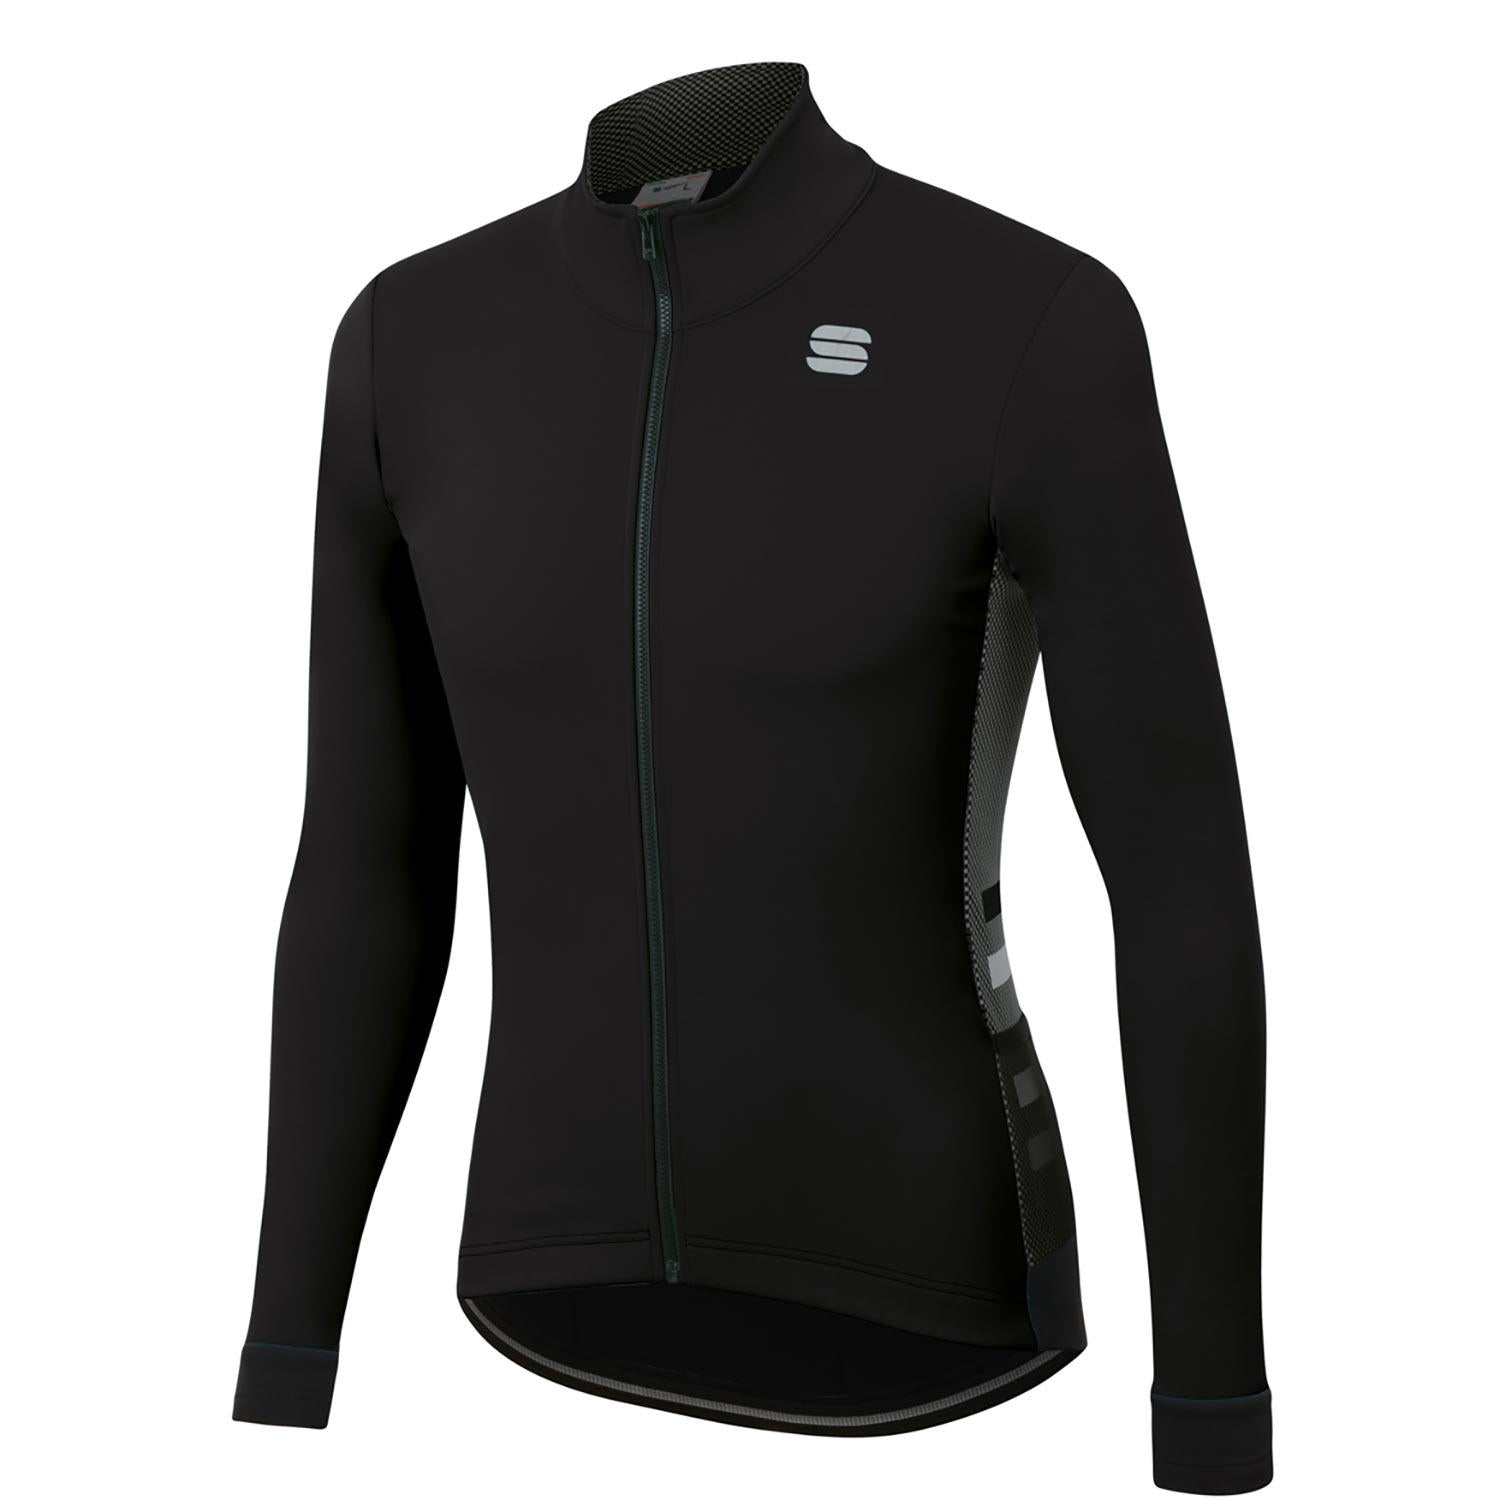 Sportful-Sportful Neo Softshell Jacket-Black-S-SF205130022-saddleback-elite-performance-cycling